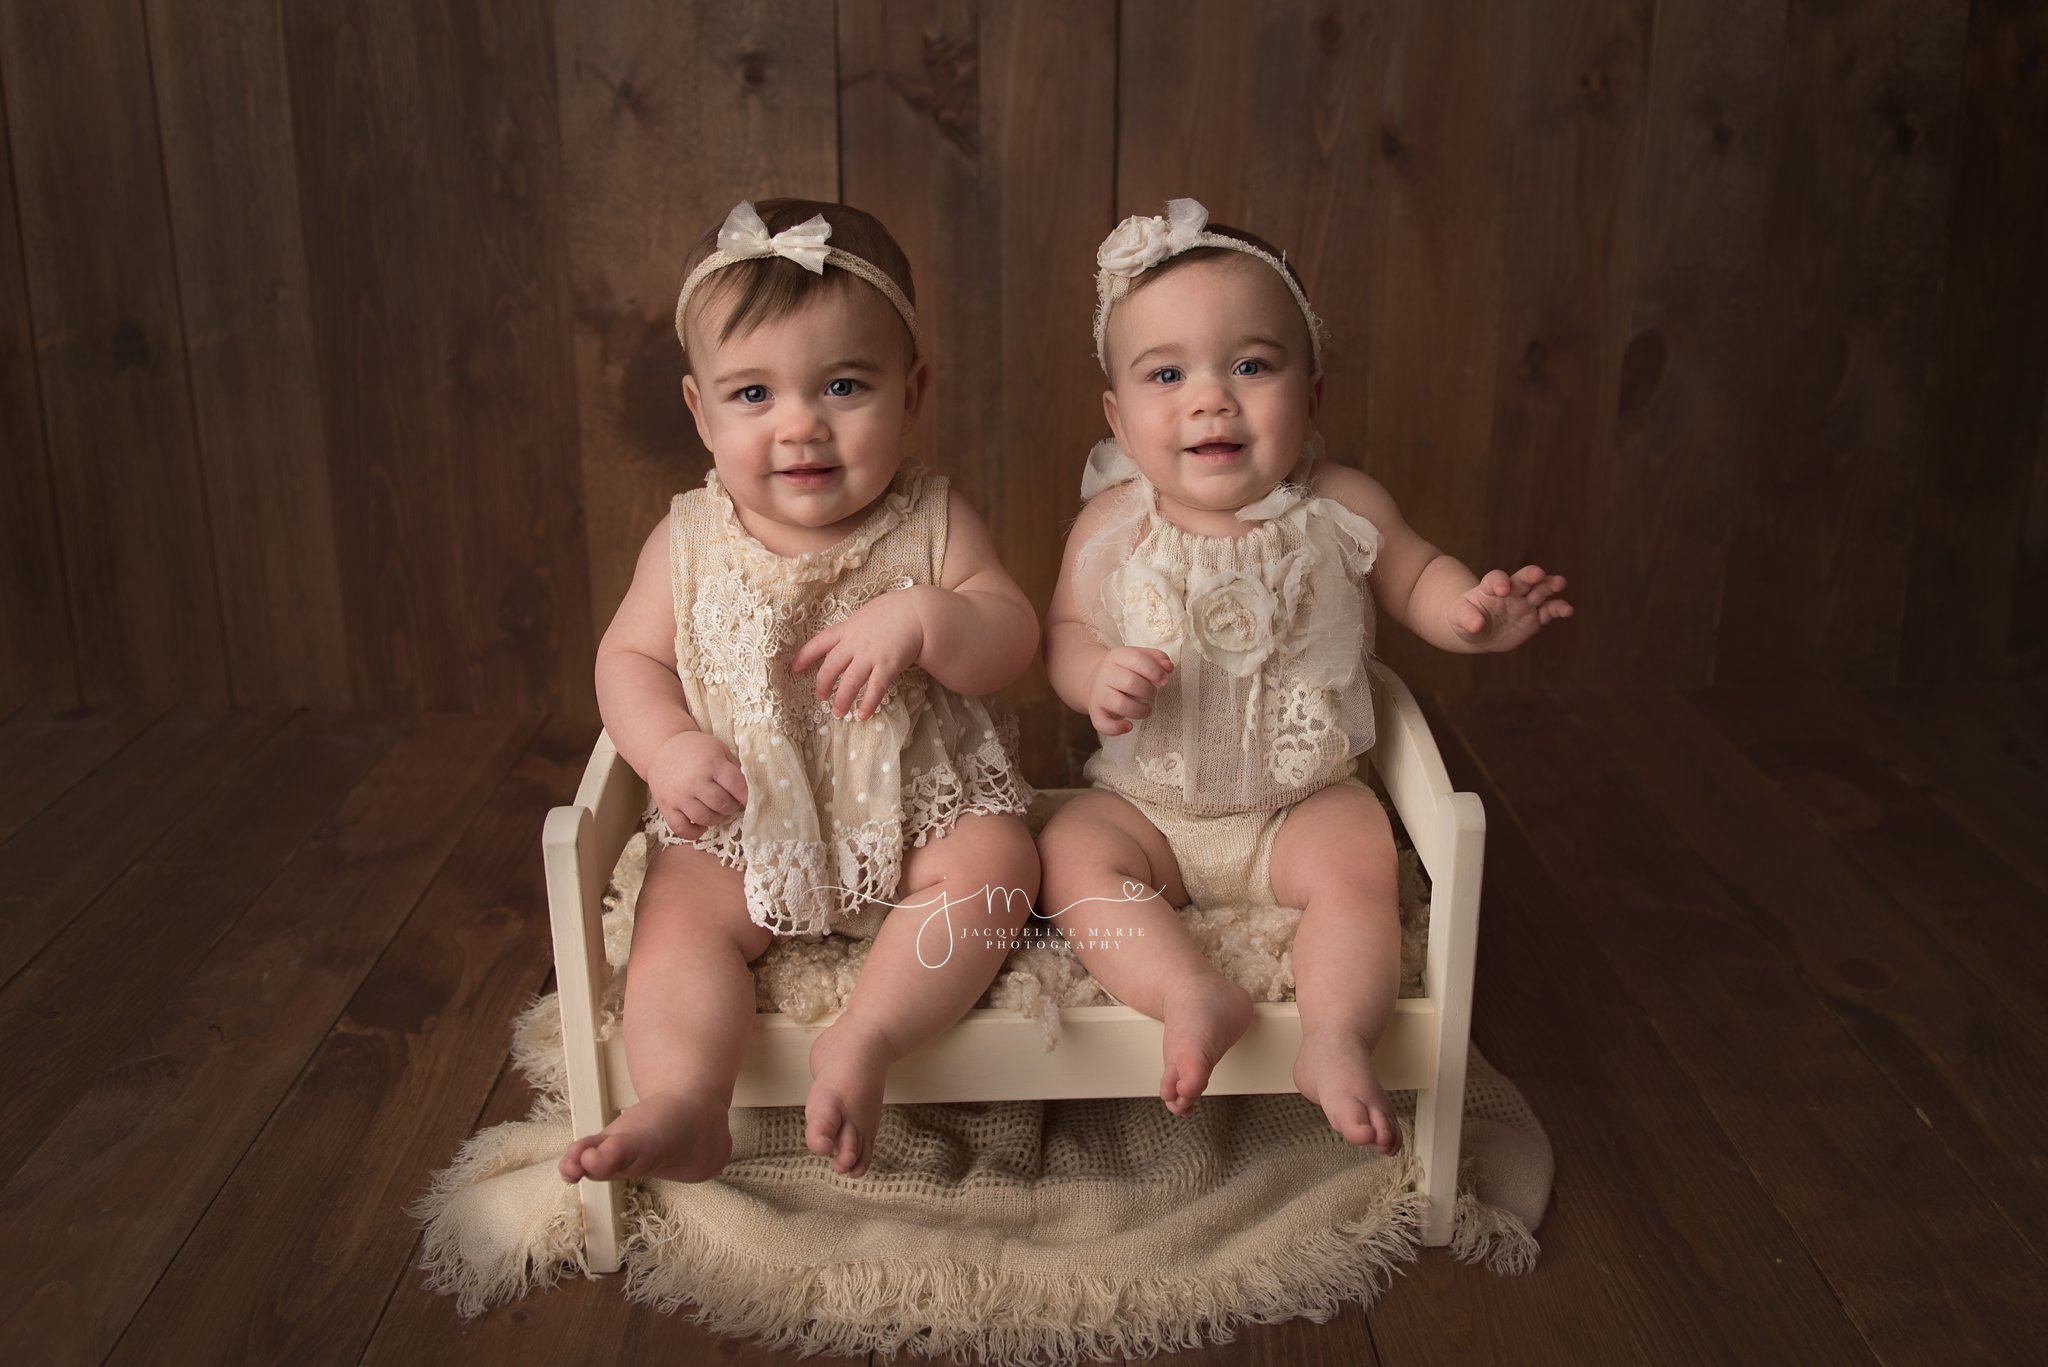 1 year old sisters sit on cream wooden bed prop in columbus ohio for first birthday session